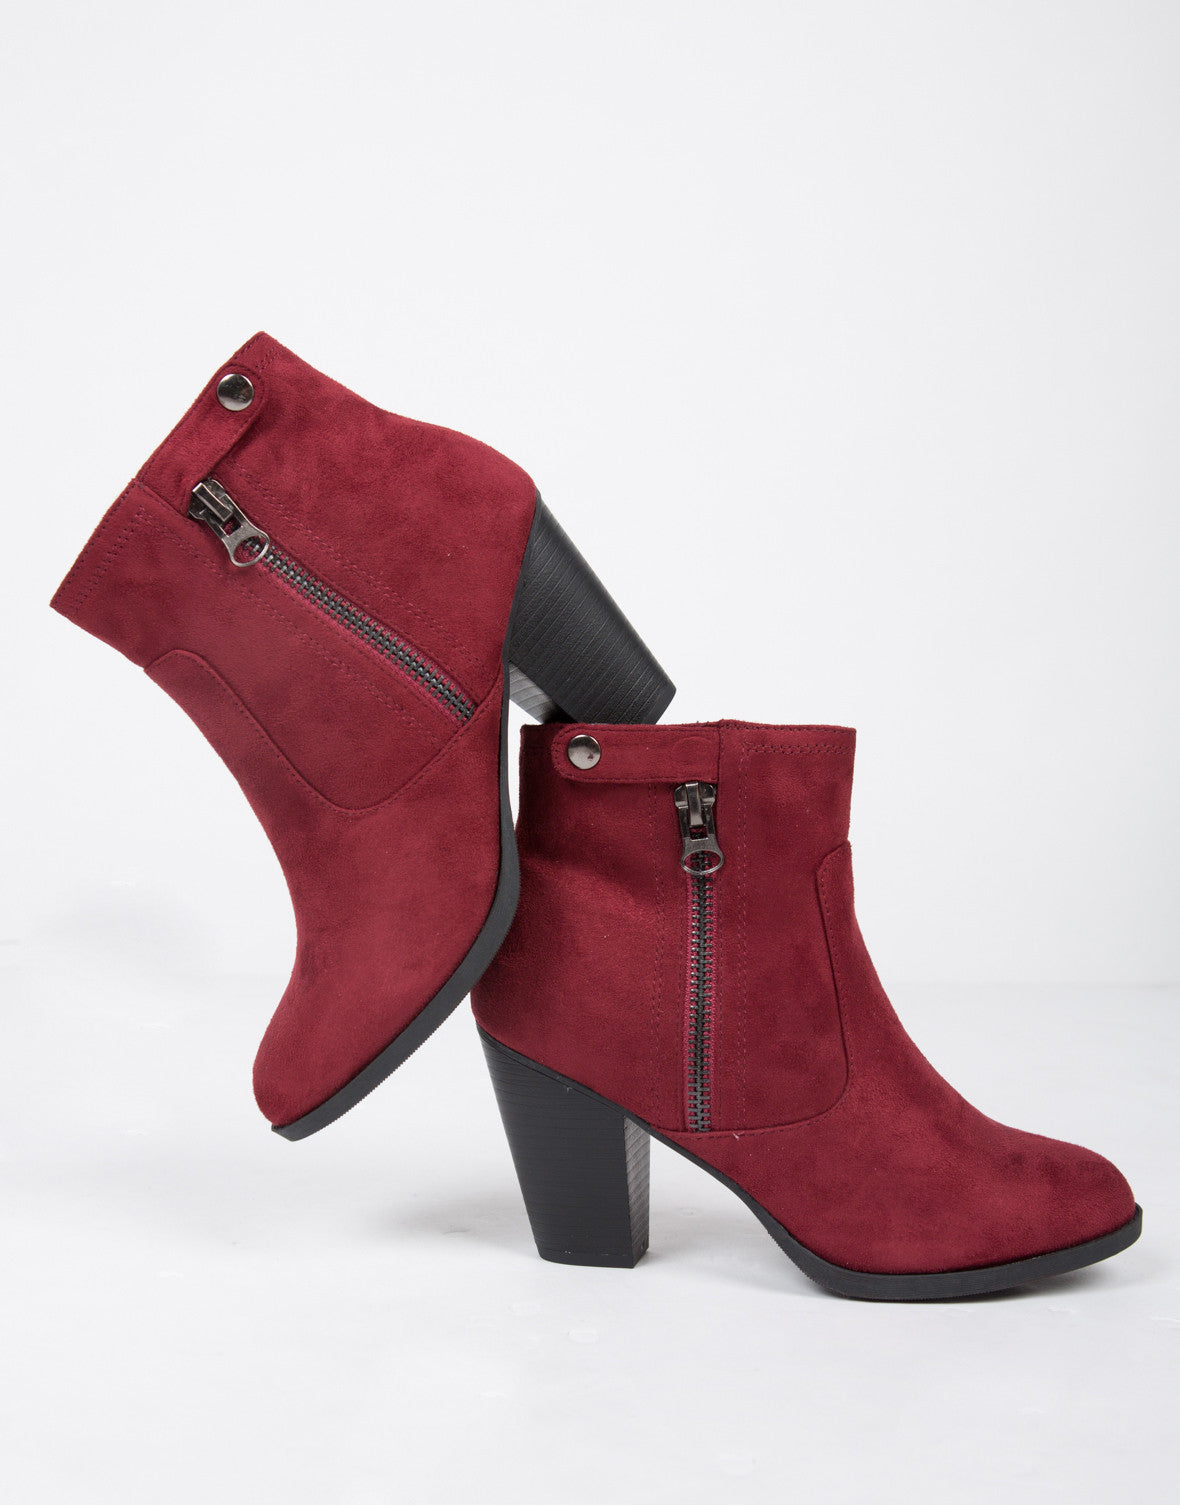 Zipped Up Suede Ankle Boots